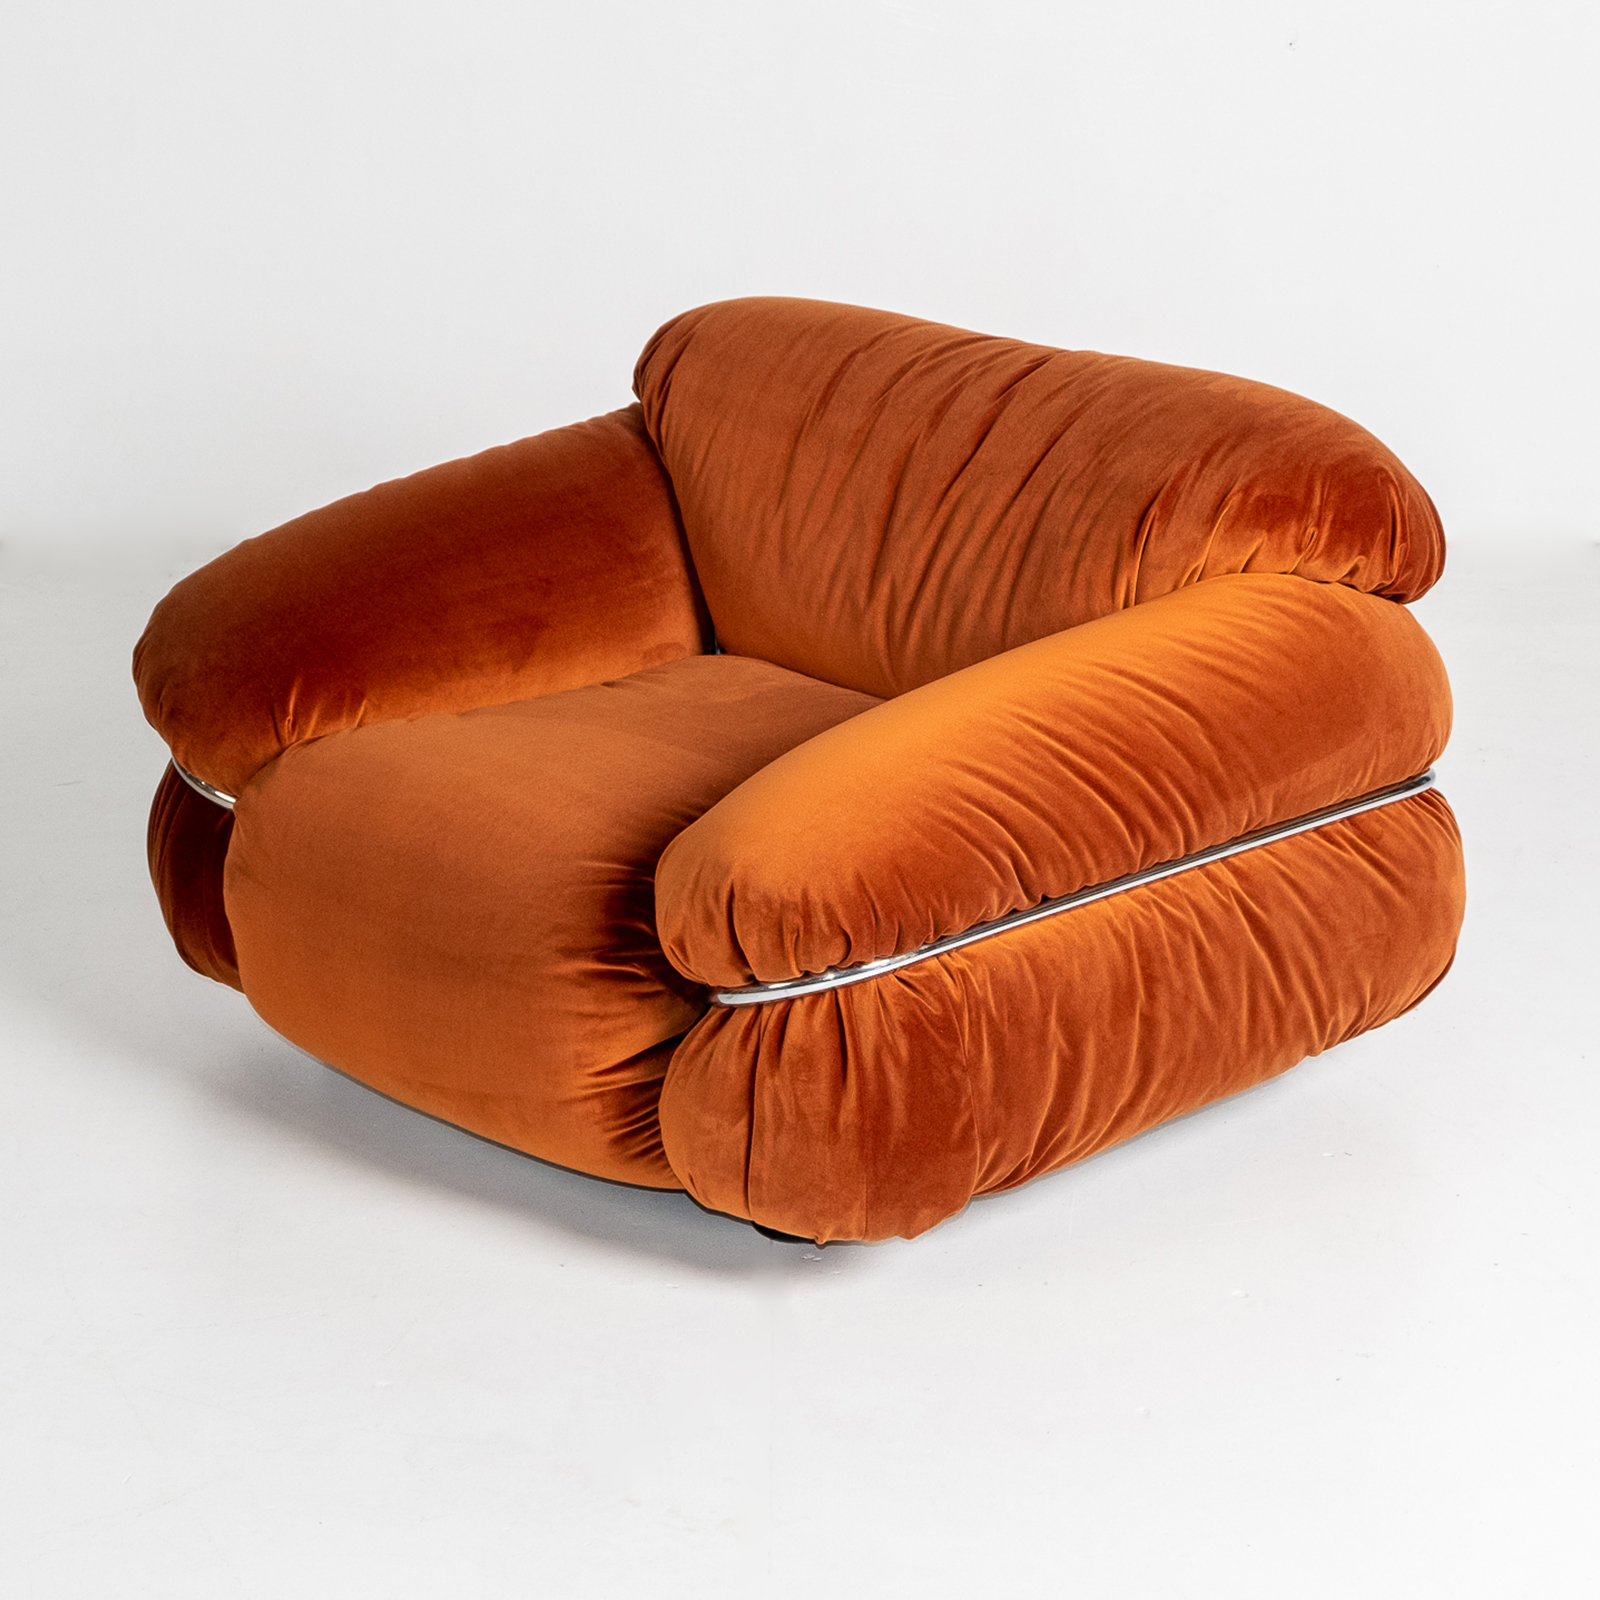 Model 595 Sesann Armchair By Gianfranco Frattini For Cassina, 1970s, Italy Hero